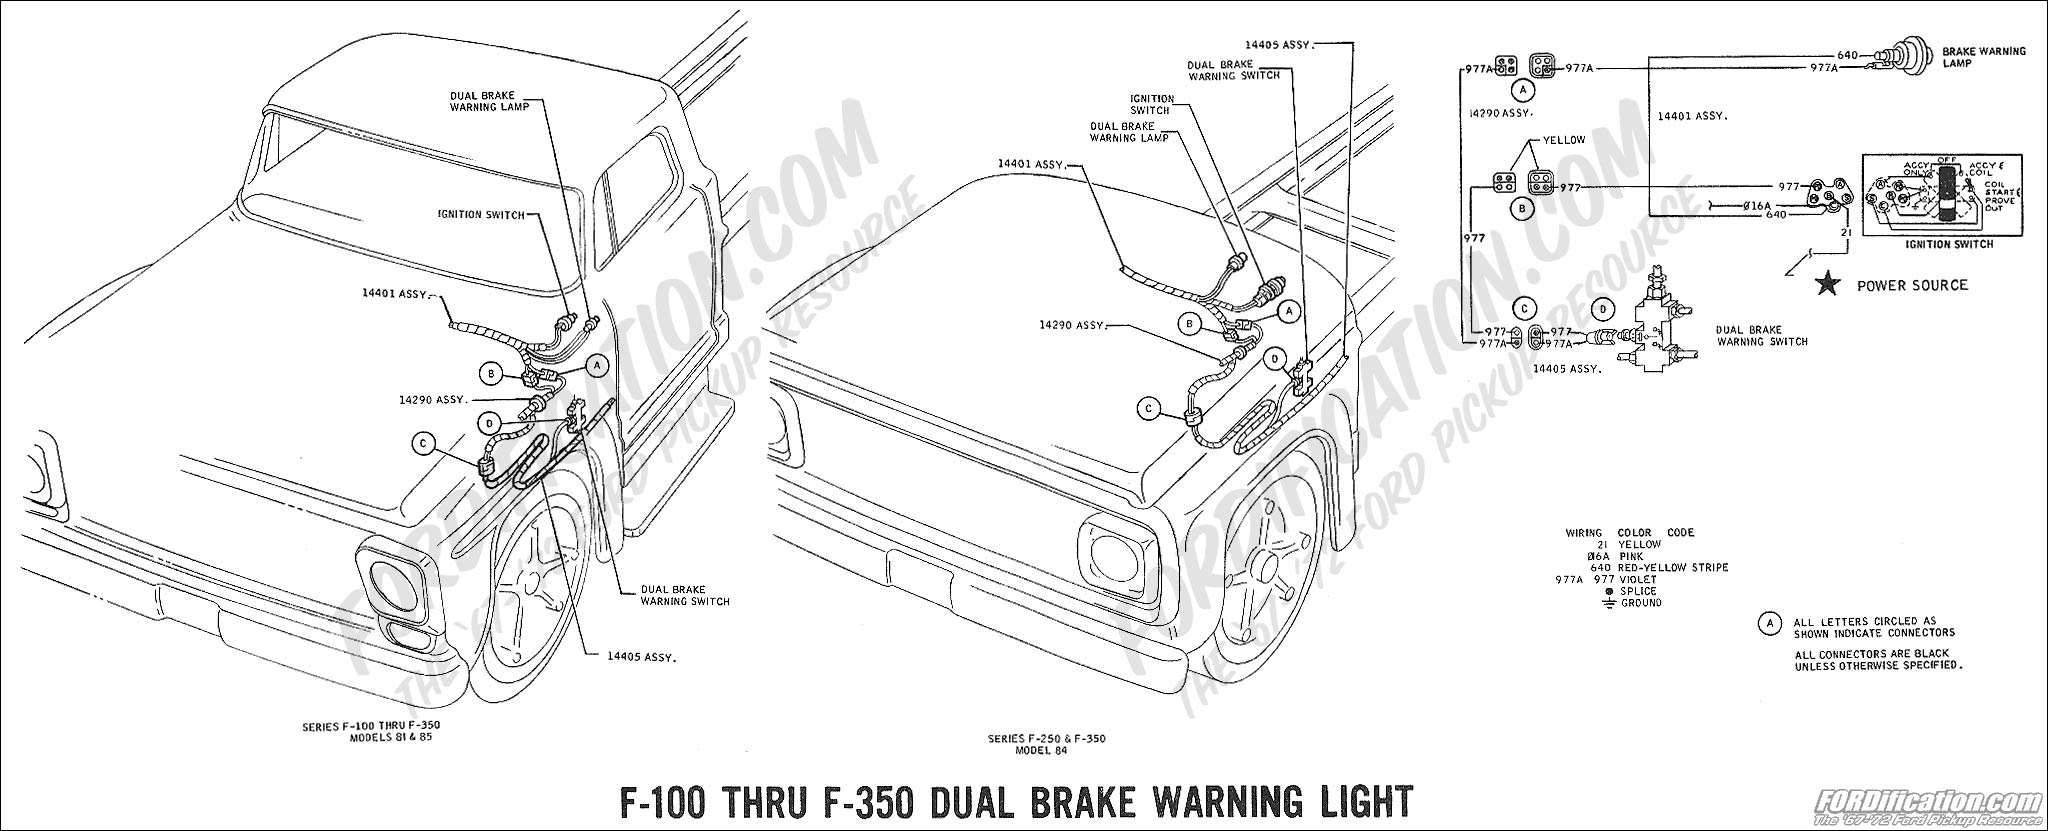 [WRG-2077] 1971 F250 Headlight Wiring Diagram